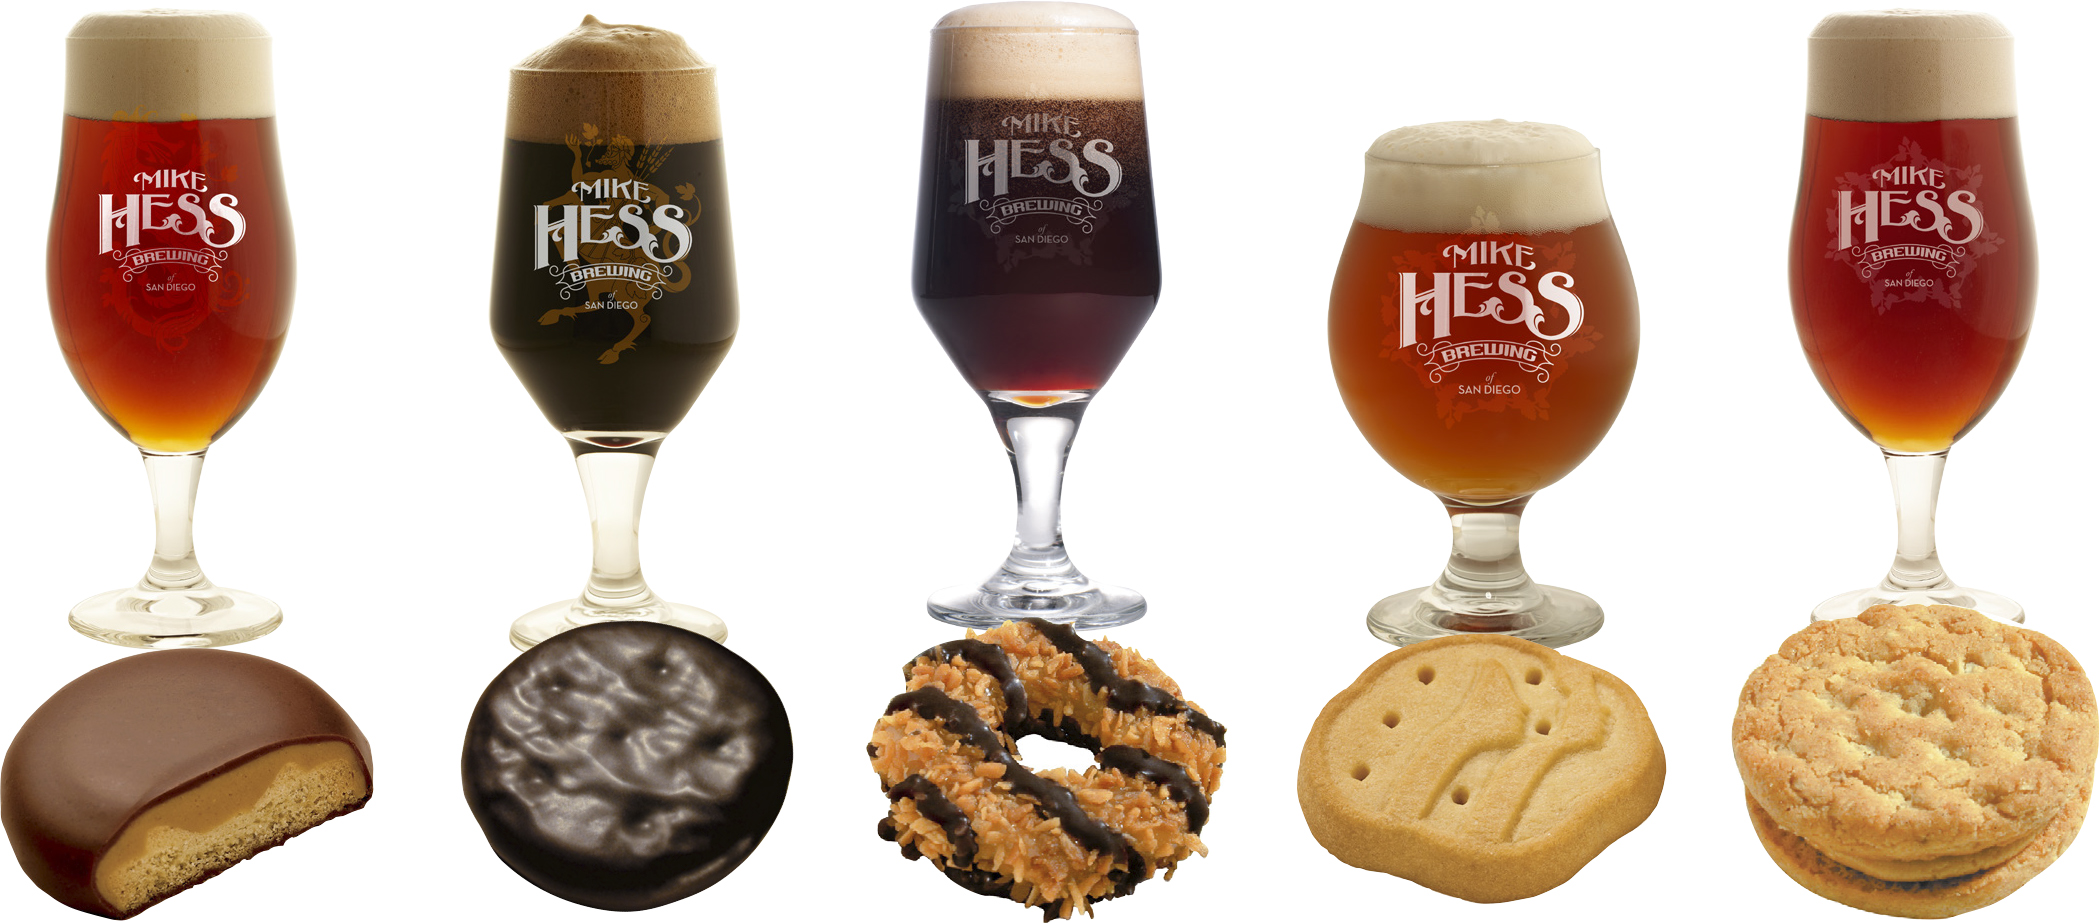 Pairing craft beer with Girl Scout cookies